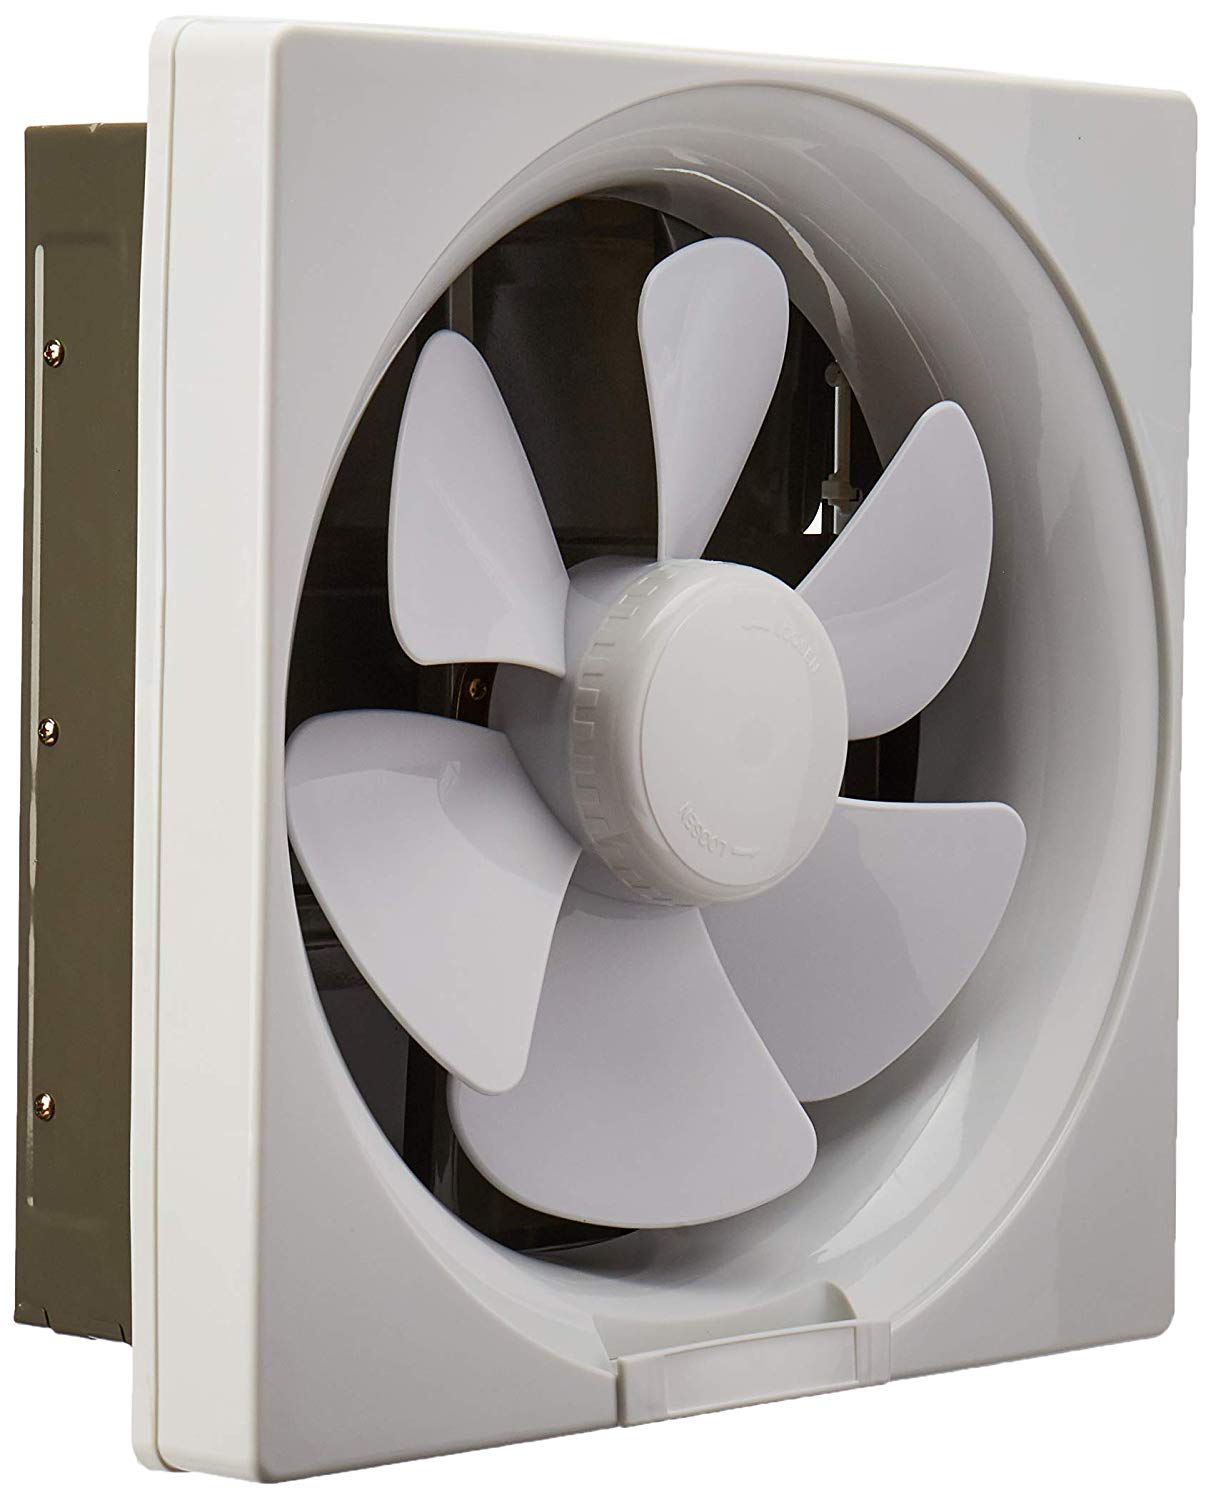 tjernlund 12 inch white plastic shutter exhaust fan for warehouses barns factories and greenhouses walmart com